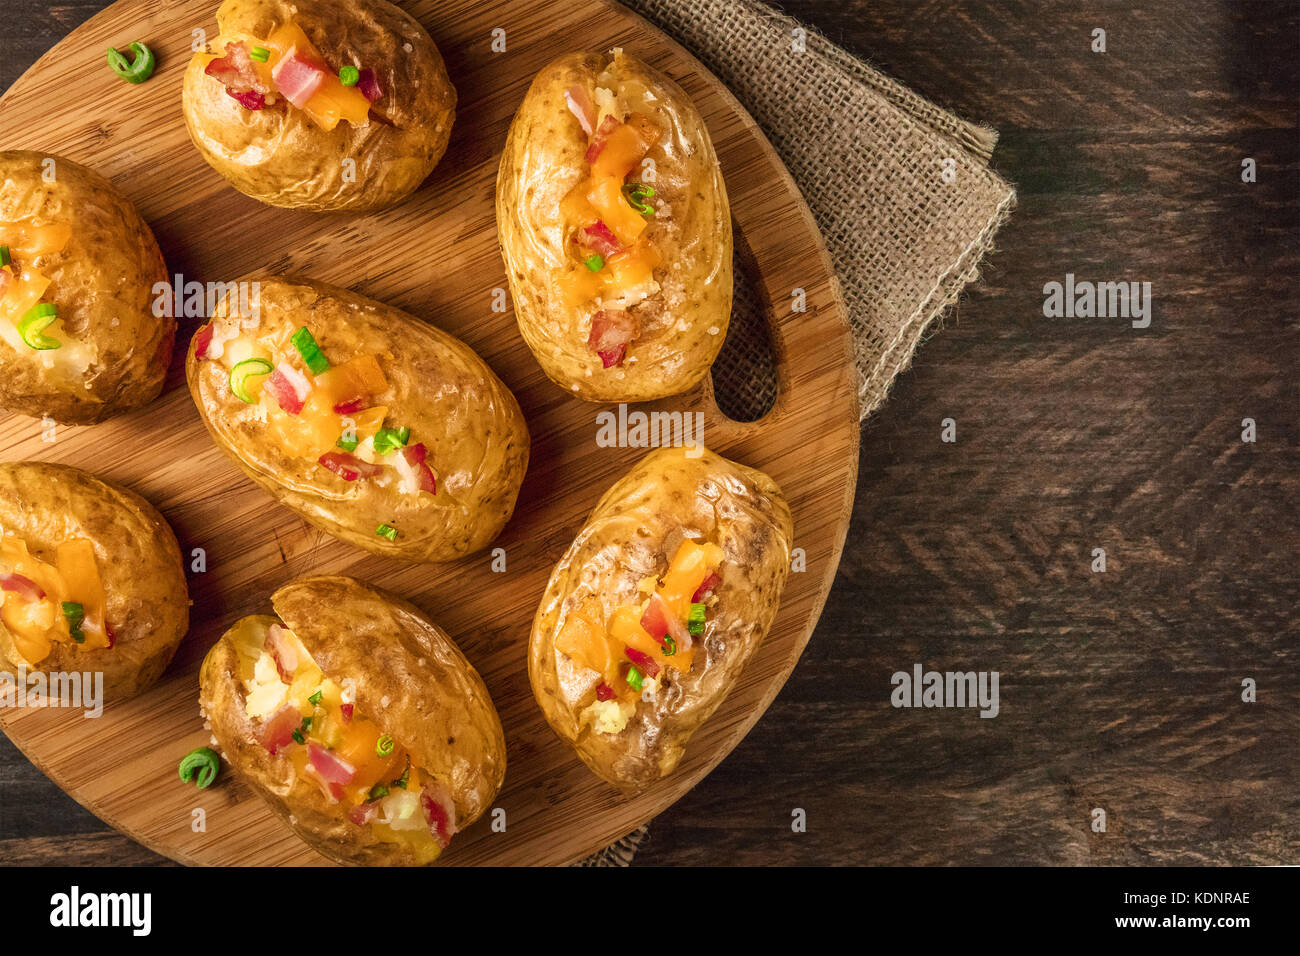 Baked potatoes with cheese, bacon, and copy space - Stock Image